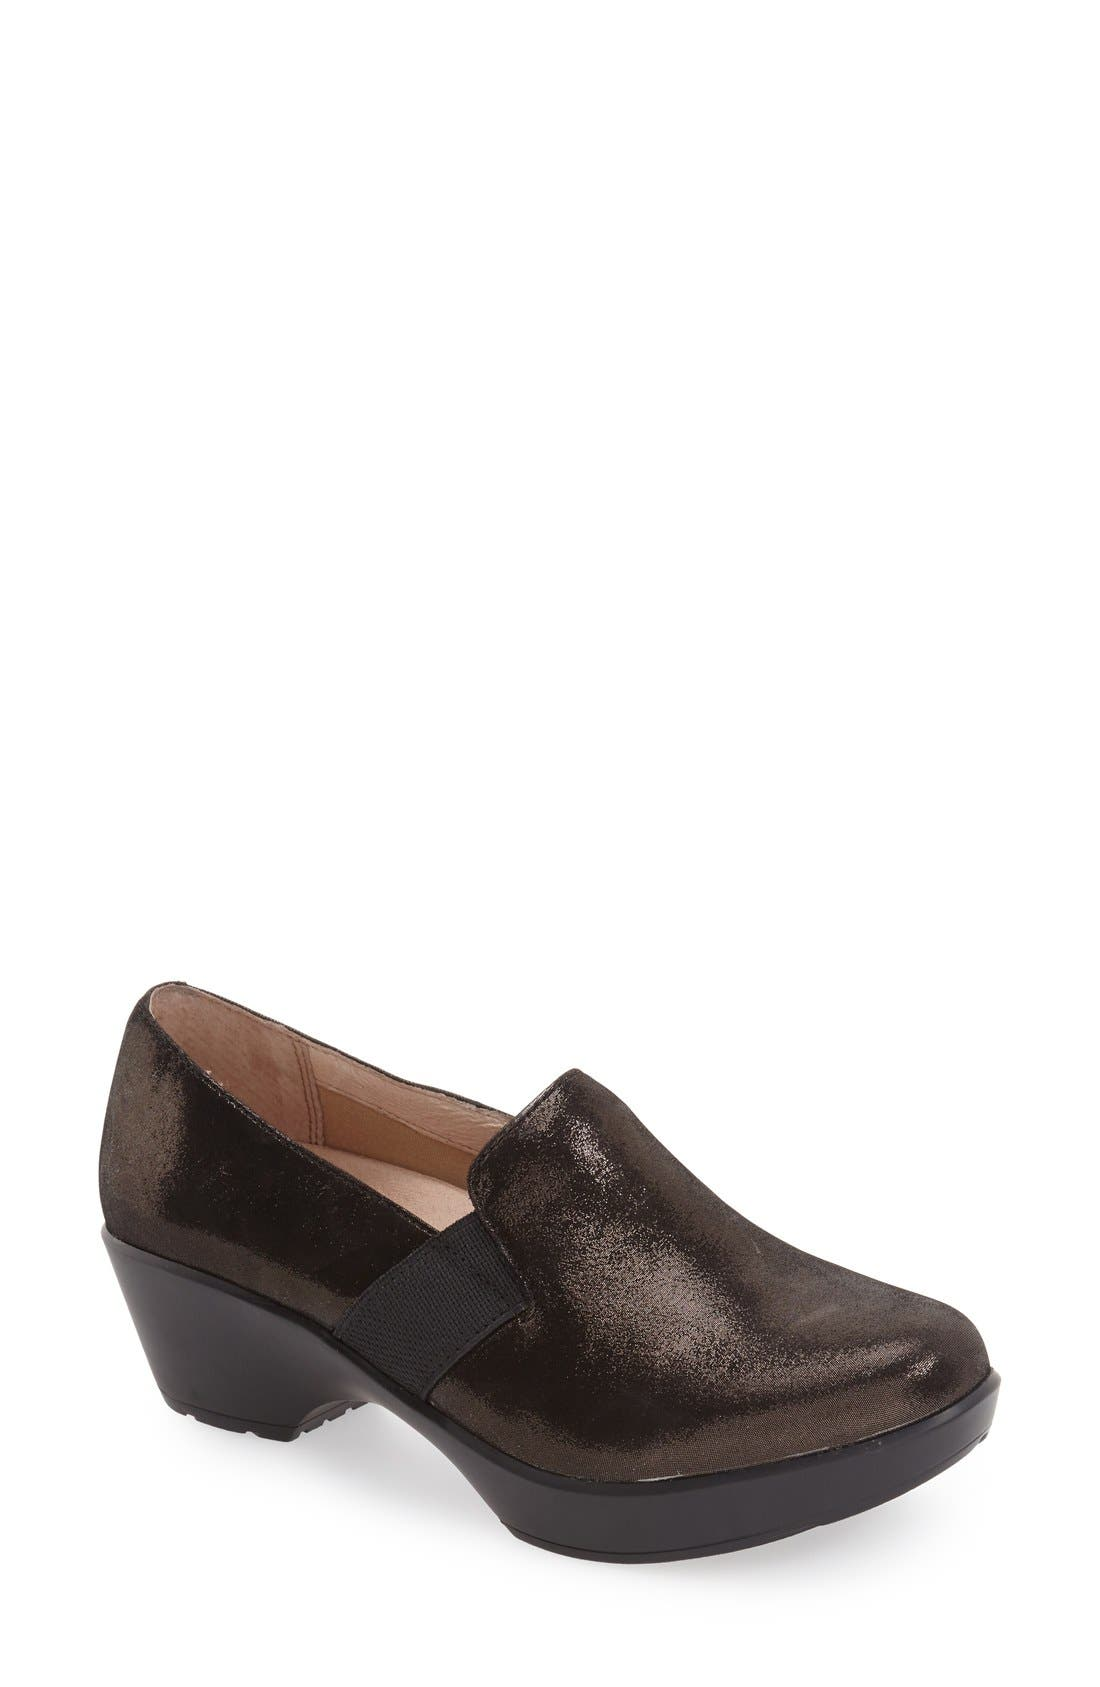 'Jessica' Platform Loafer,                         Main,                         color, Black Metallic Suede